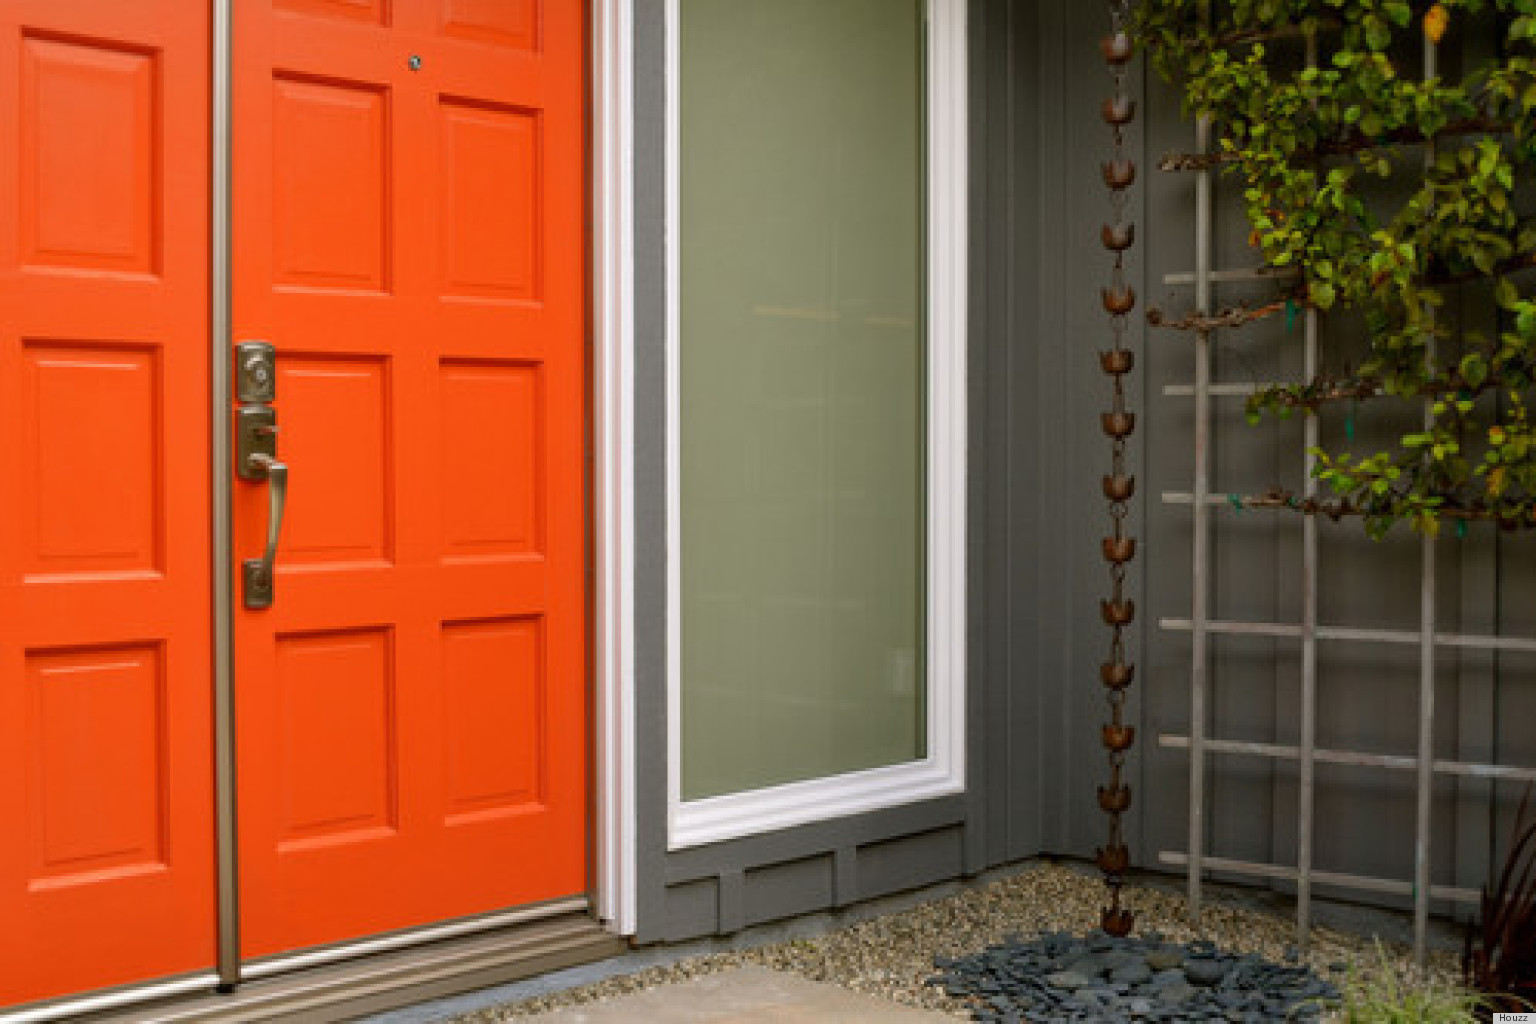 The 6 Absolute Best Paint Colors For Your Front Door (PHOTOS) | HuffPost & The 6 Absolute Best Paint Colors For Your Front Door (PHOTOS ... Pezcame.Com